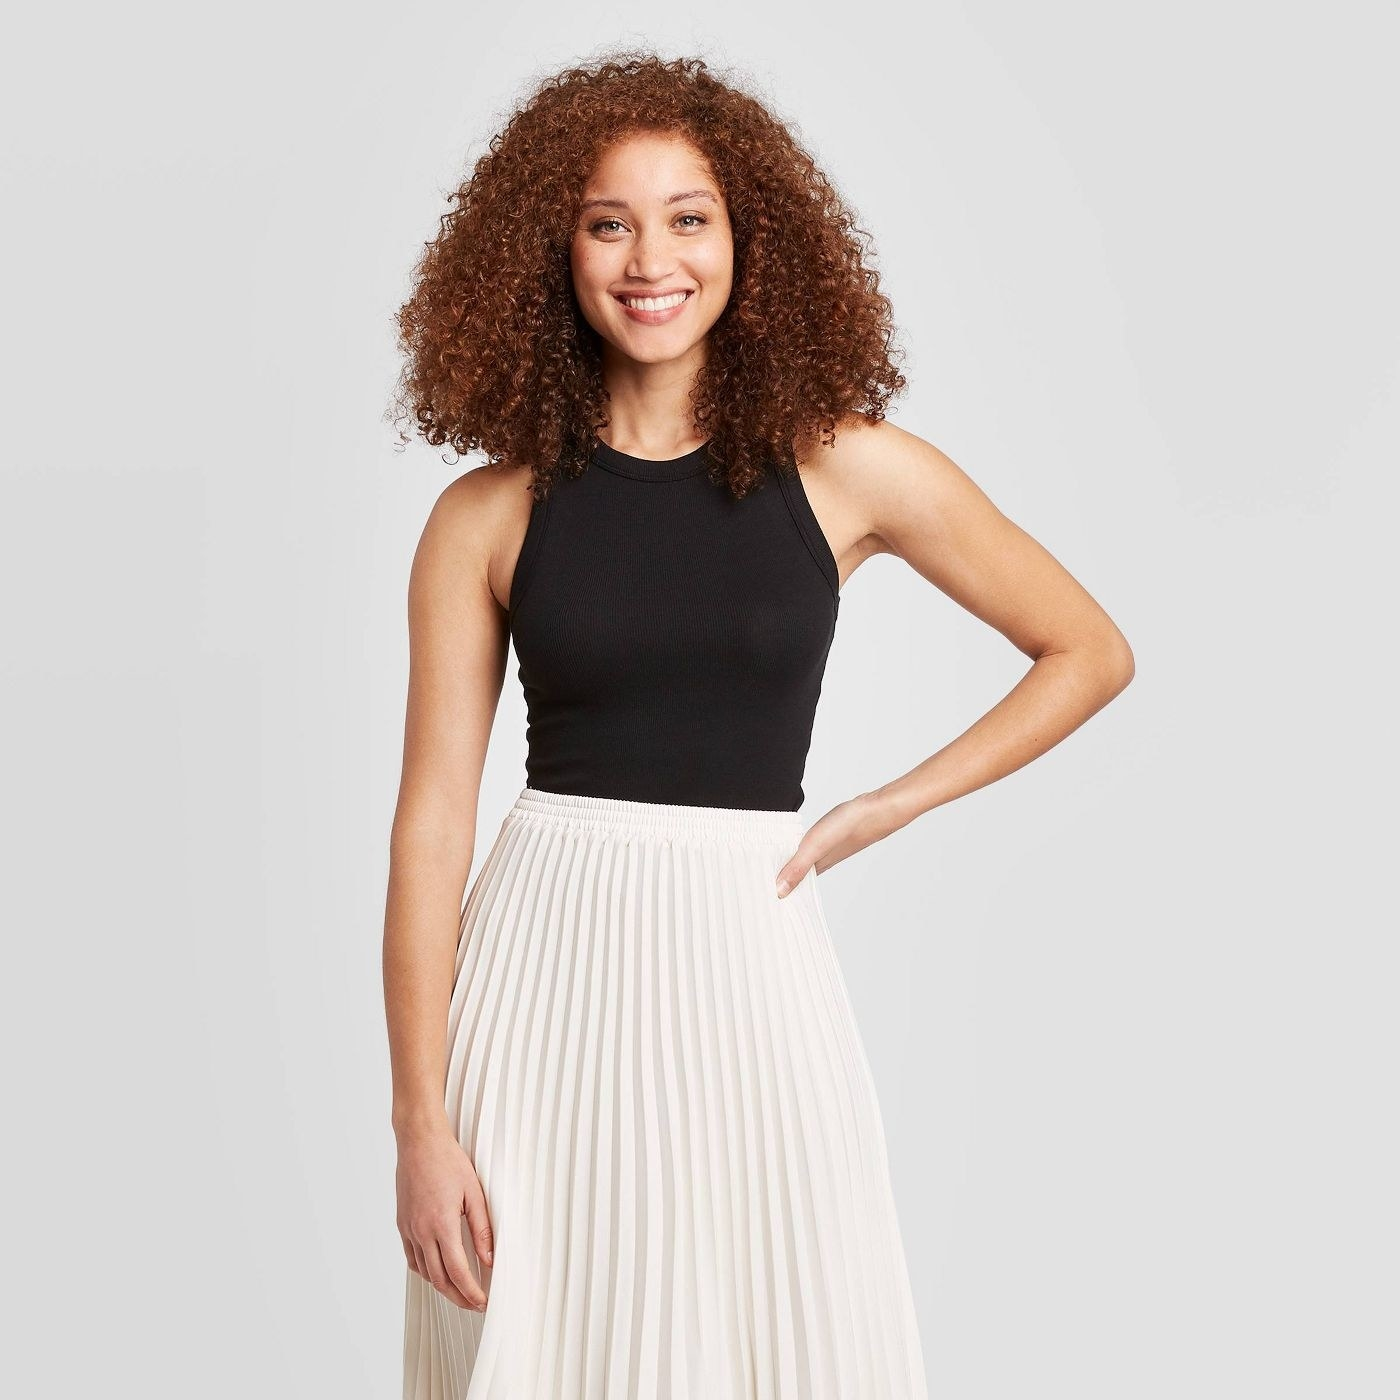 Model in black tank top and white skirt